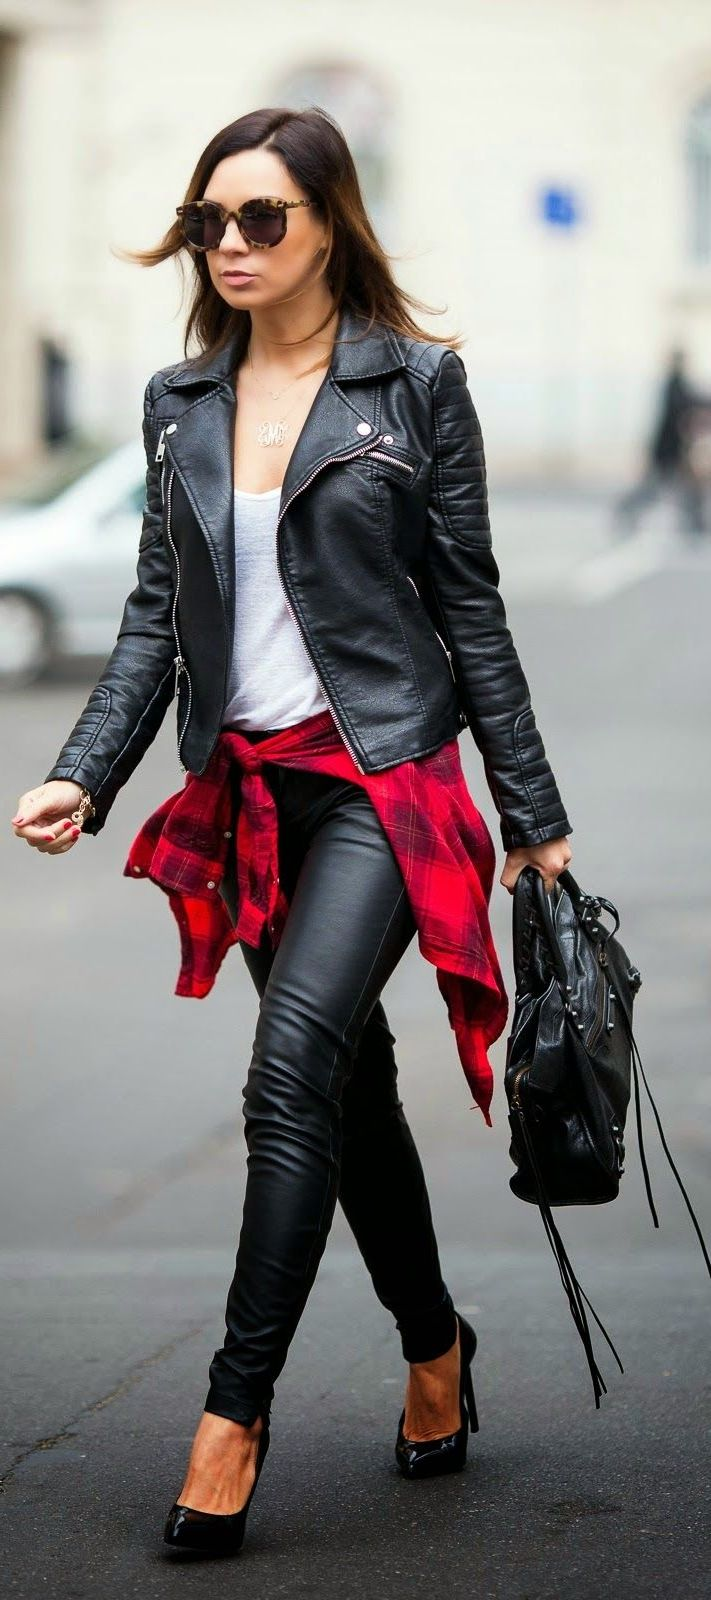 How To Style Black Leather Pants For Women 2021